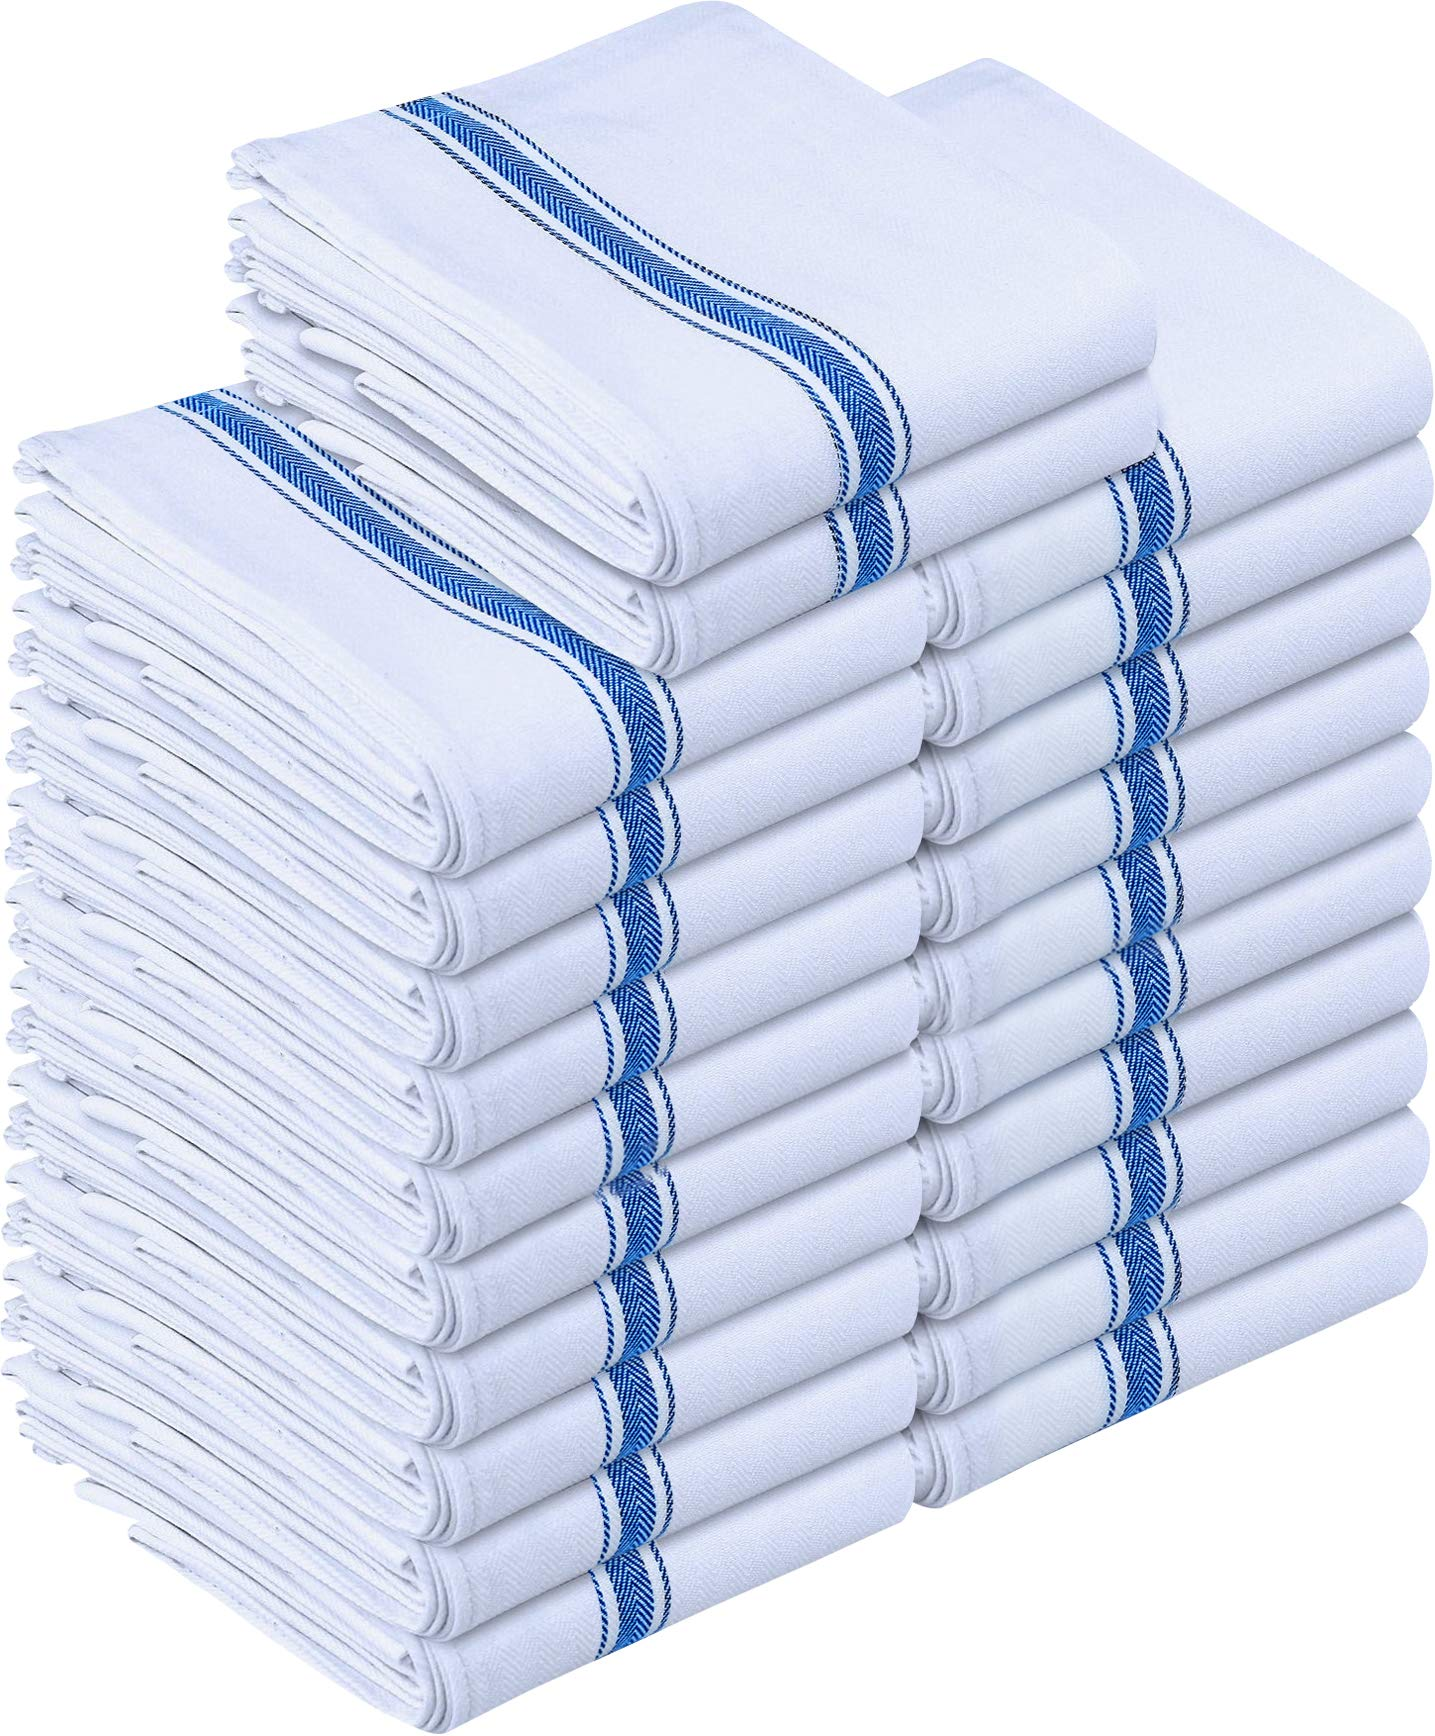 Utopia Towels Kitchen Towels 24 Pack, 15 x 25 Inches Cotton Dish Towels, Tea Towels and Bar Towels, Blue by Utopia Towels